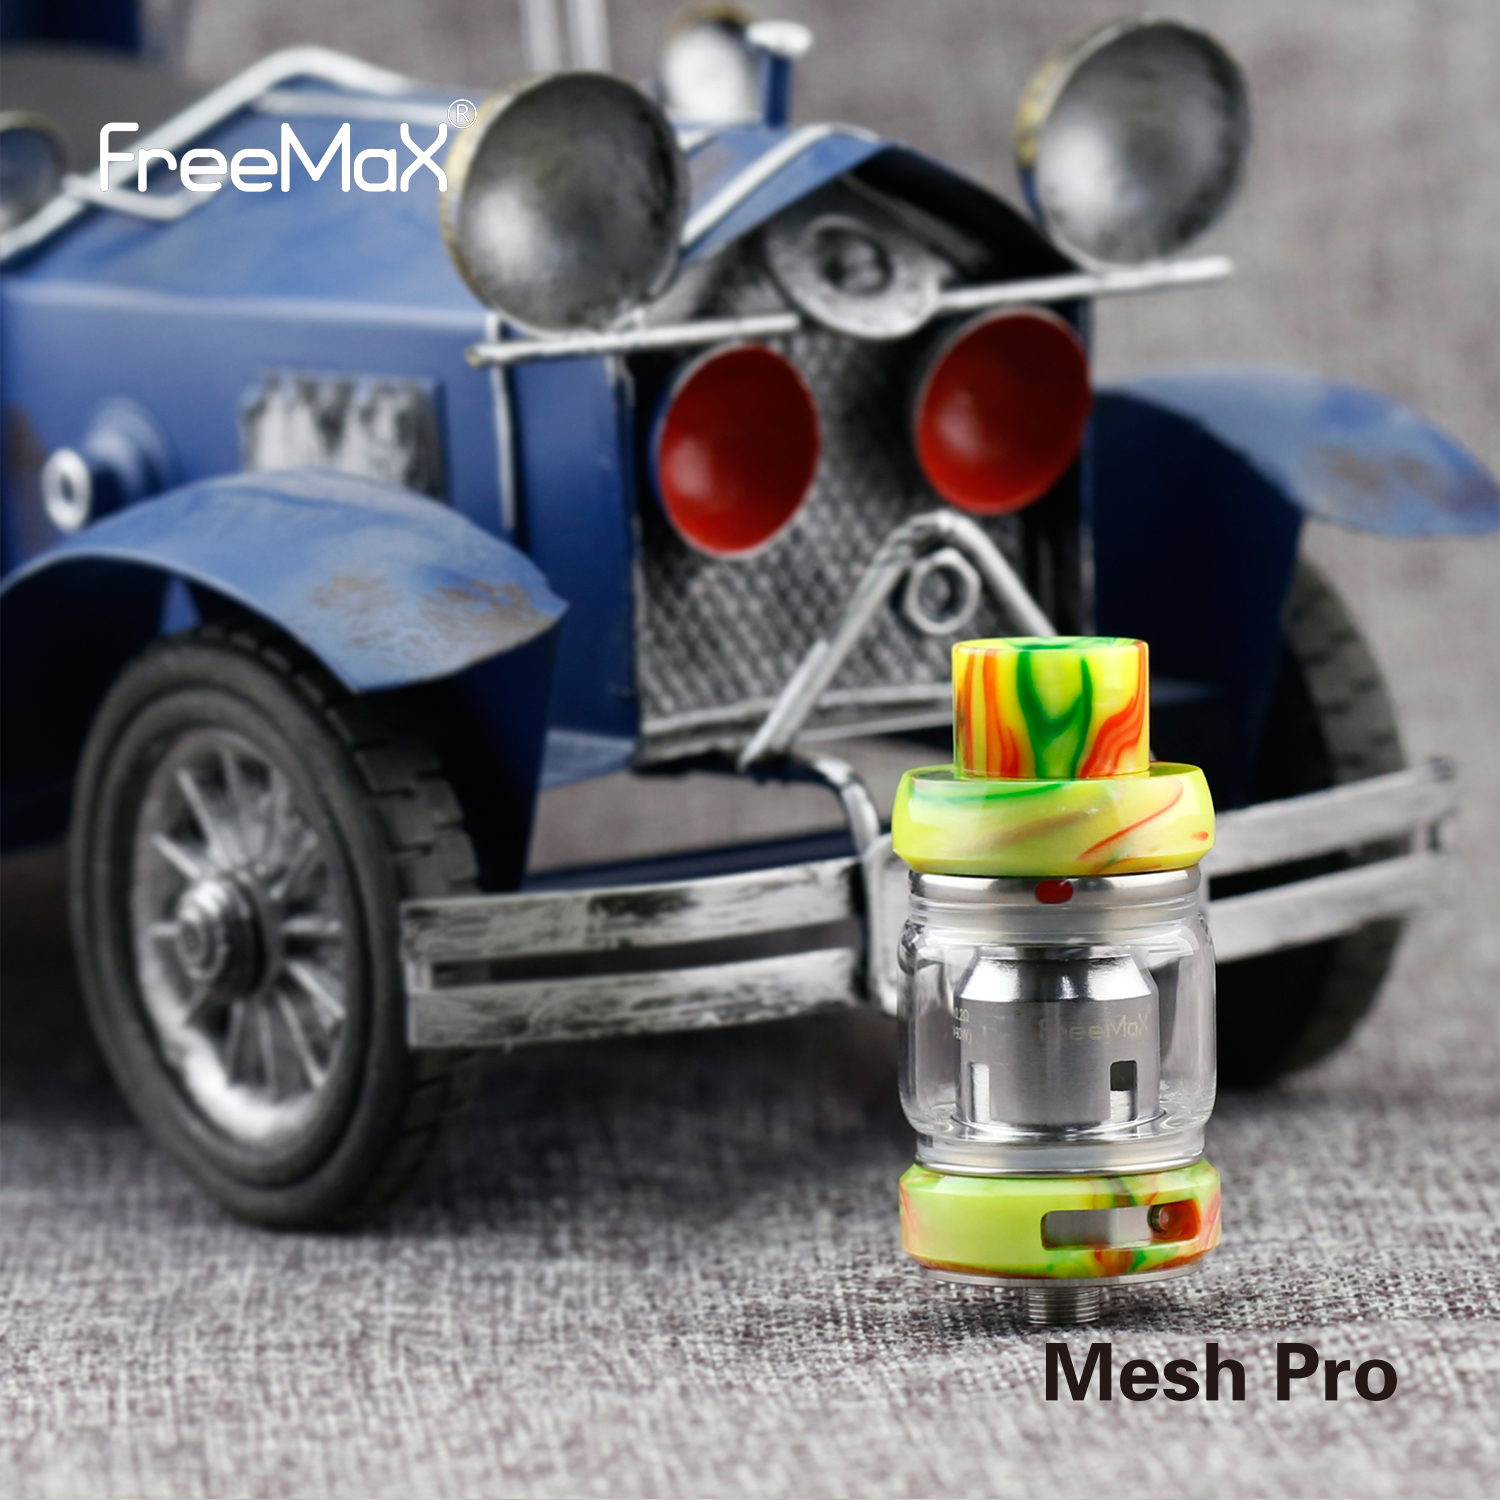 Freemax E cigarette Sub Ohm Tank Mesh Pro With Huge Cloud and Mesh Coil In Stock - MrVaper.net